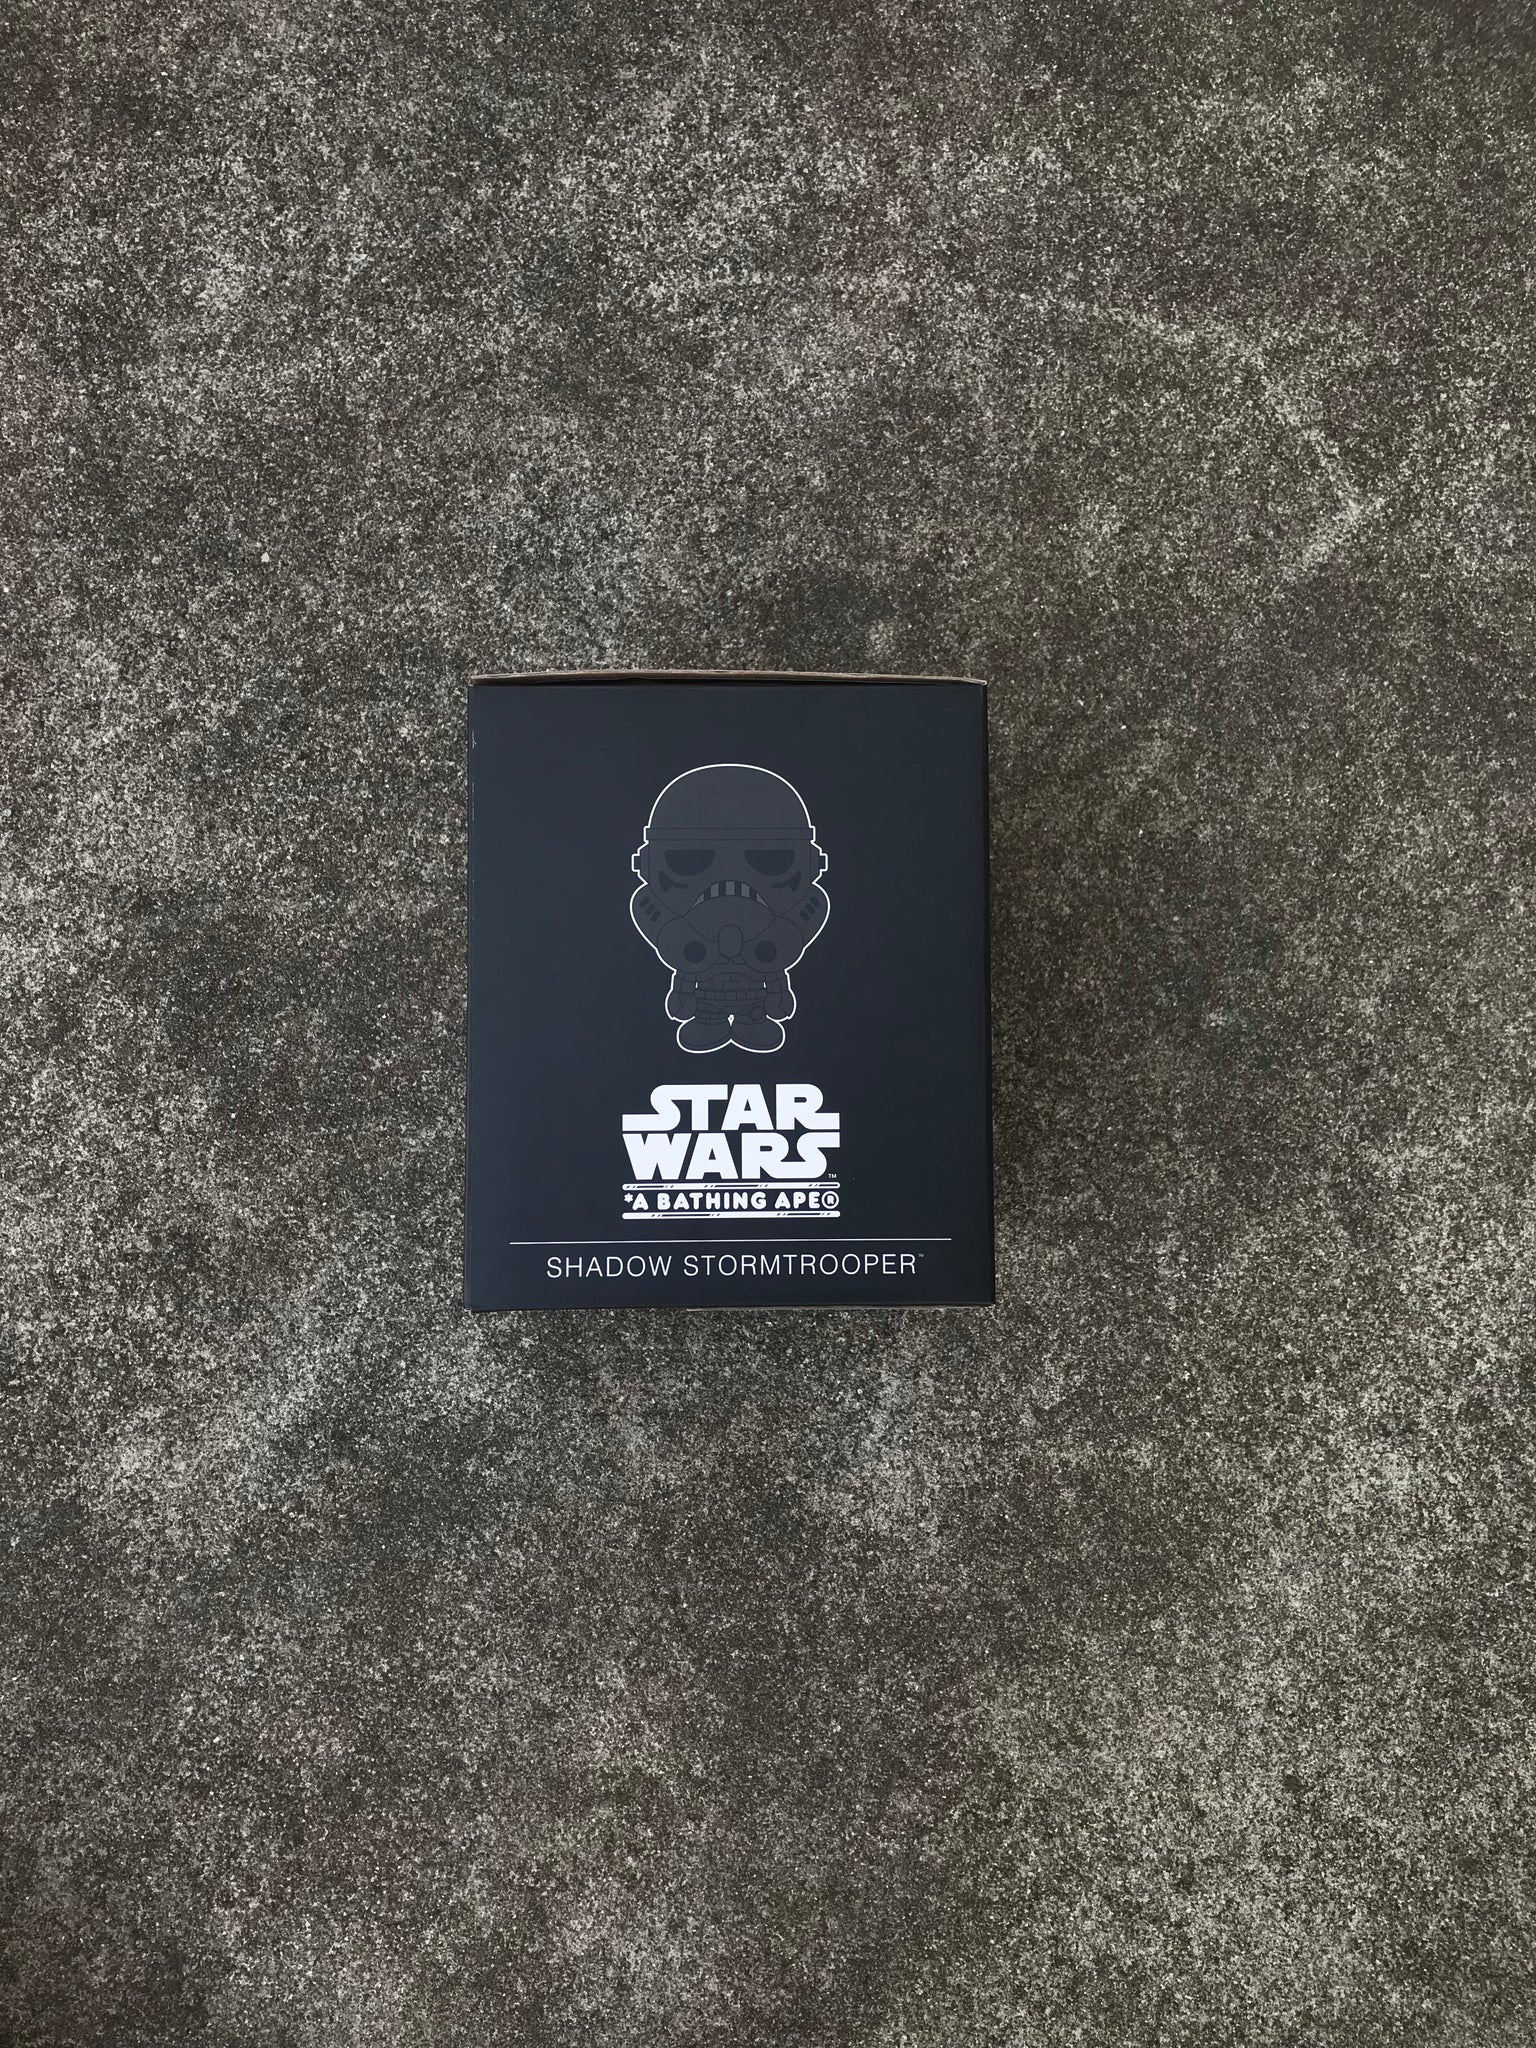 MILO X STAR WARS COLLECTIBLE (SHADOW STORMTROOPER)